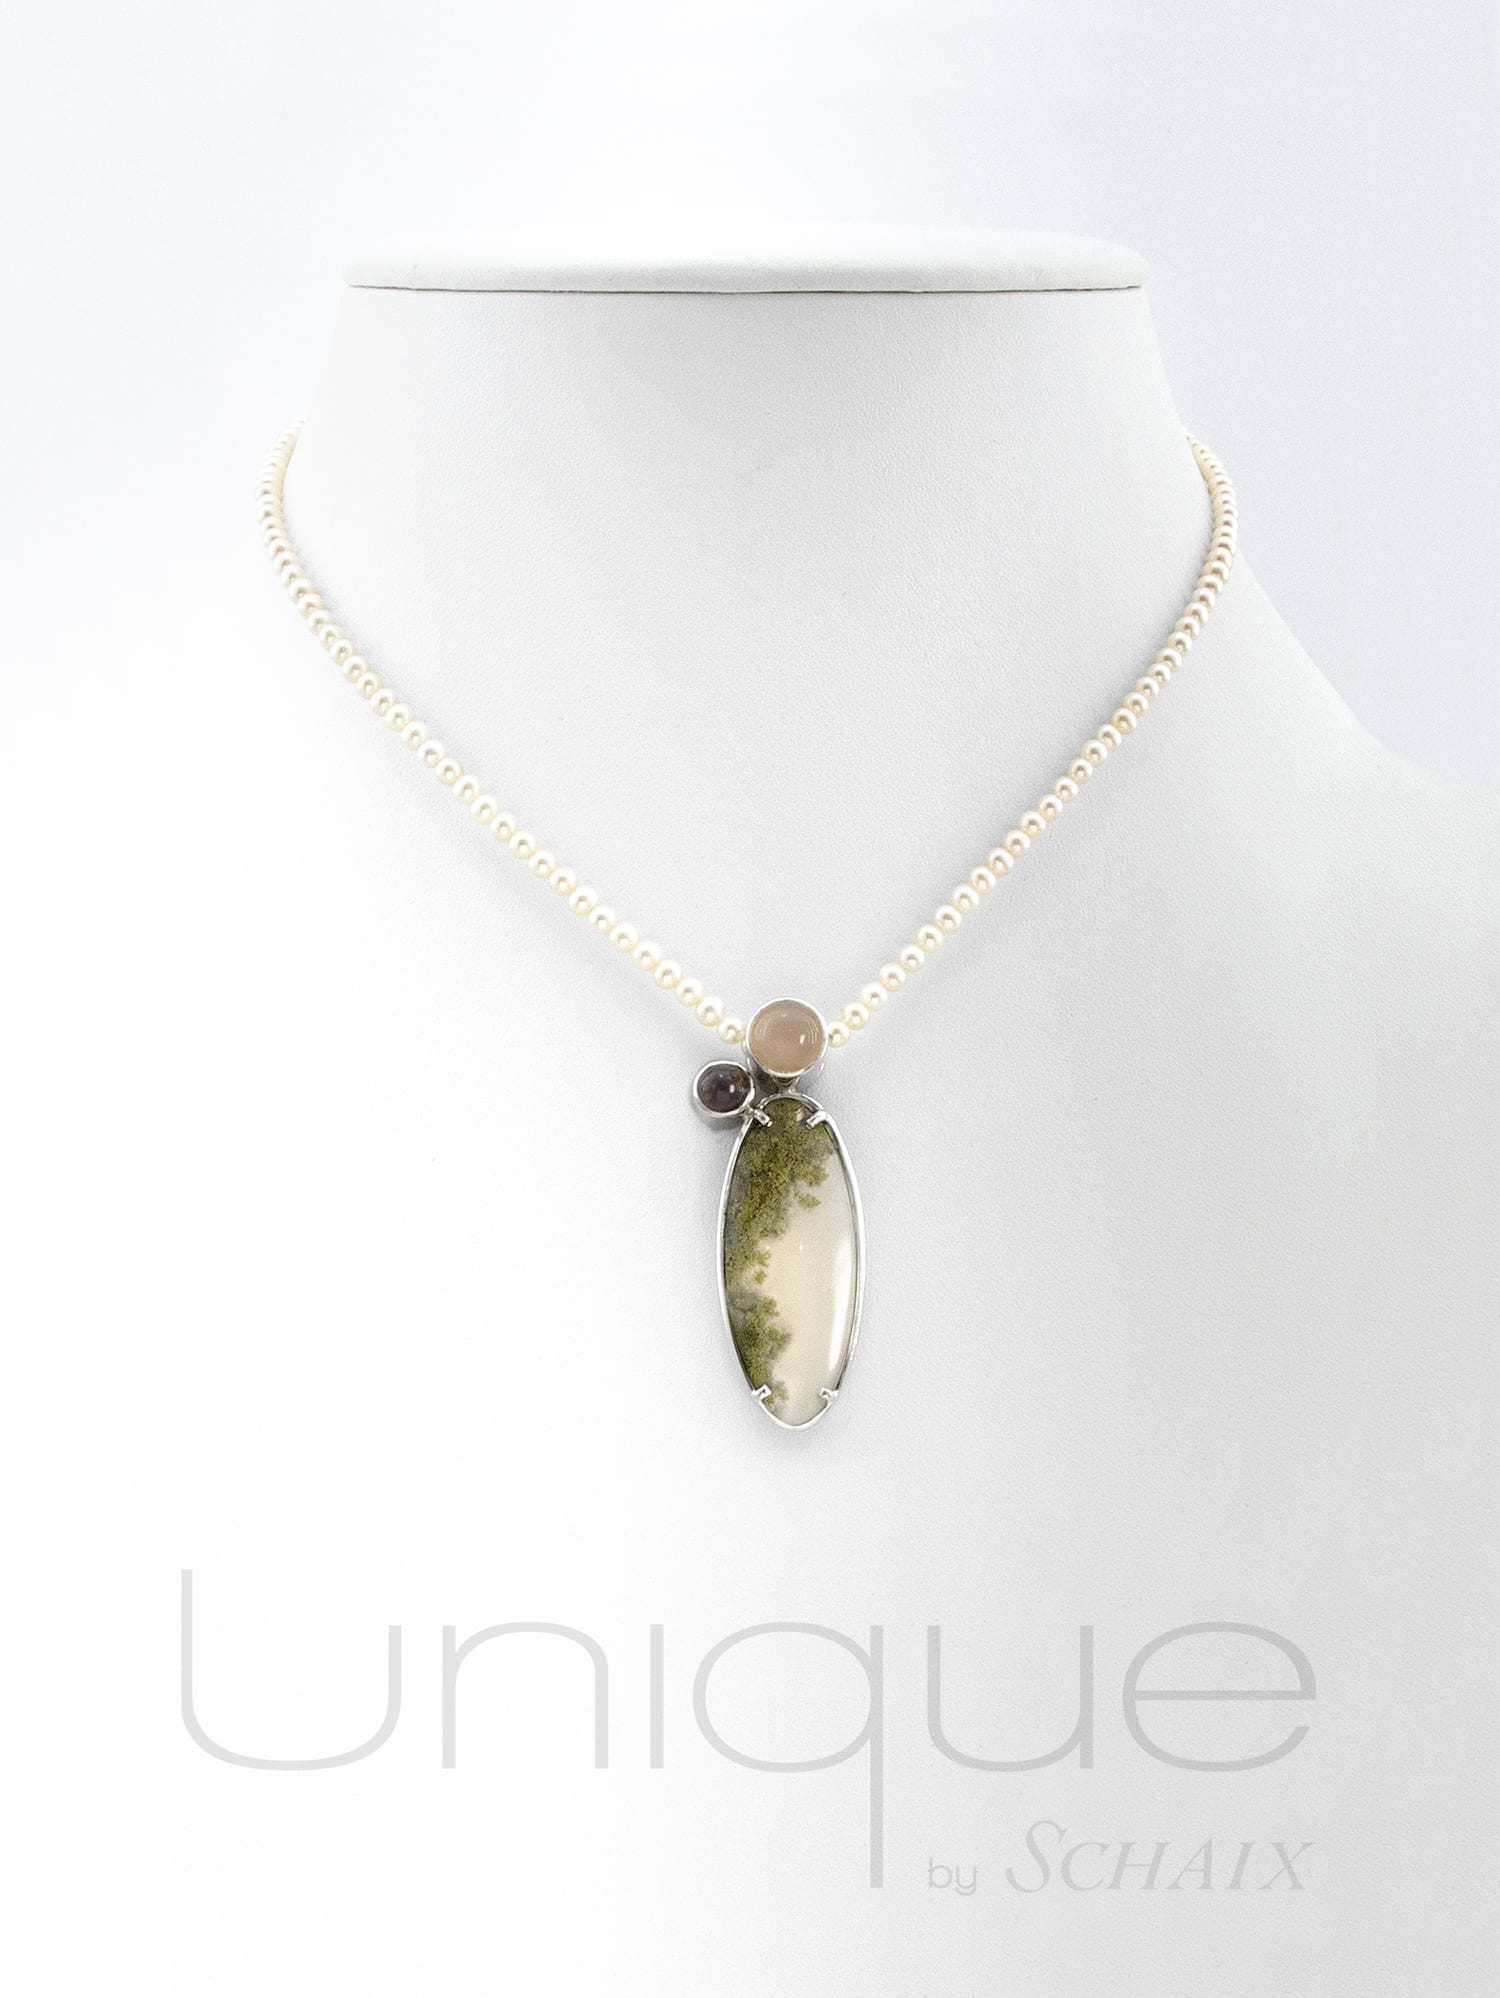 Necklace made of natural freshwater pearls with an oval agate landscape cabochon pendent, topped by a moonstone and a citrine cabochons. Silver clasp.